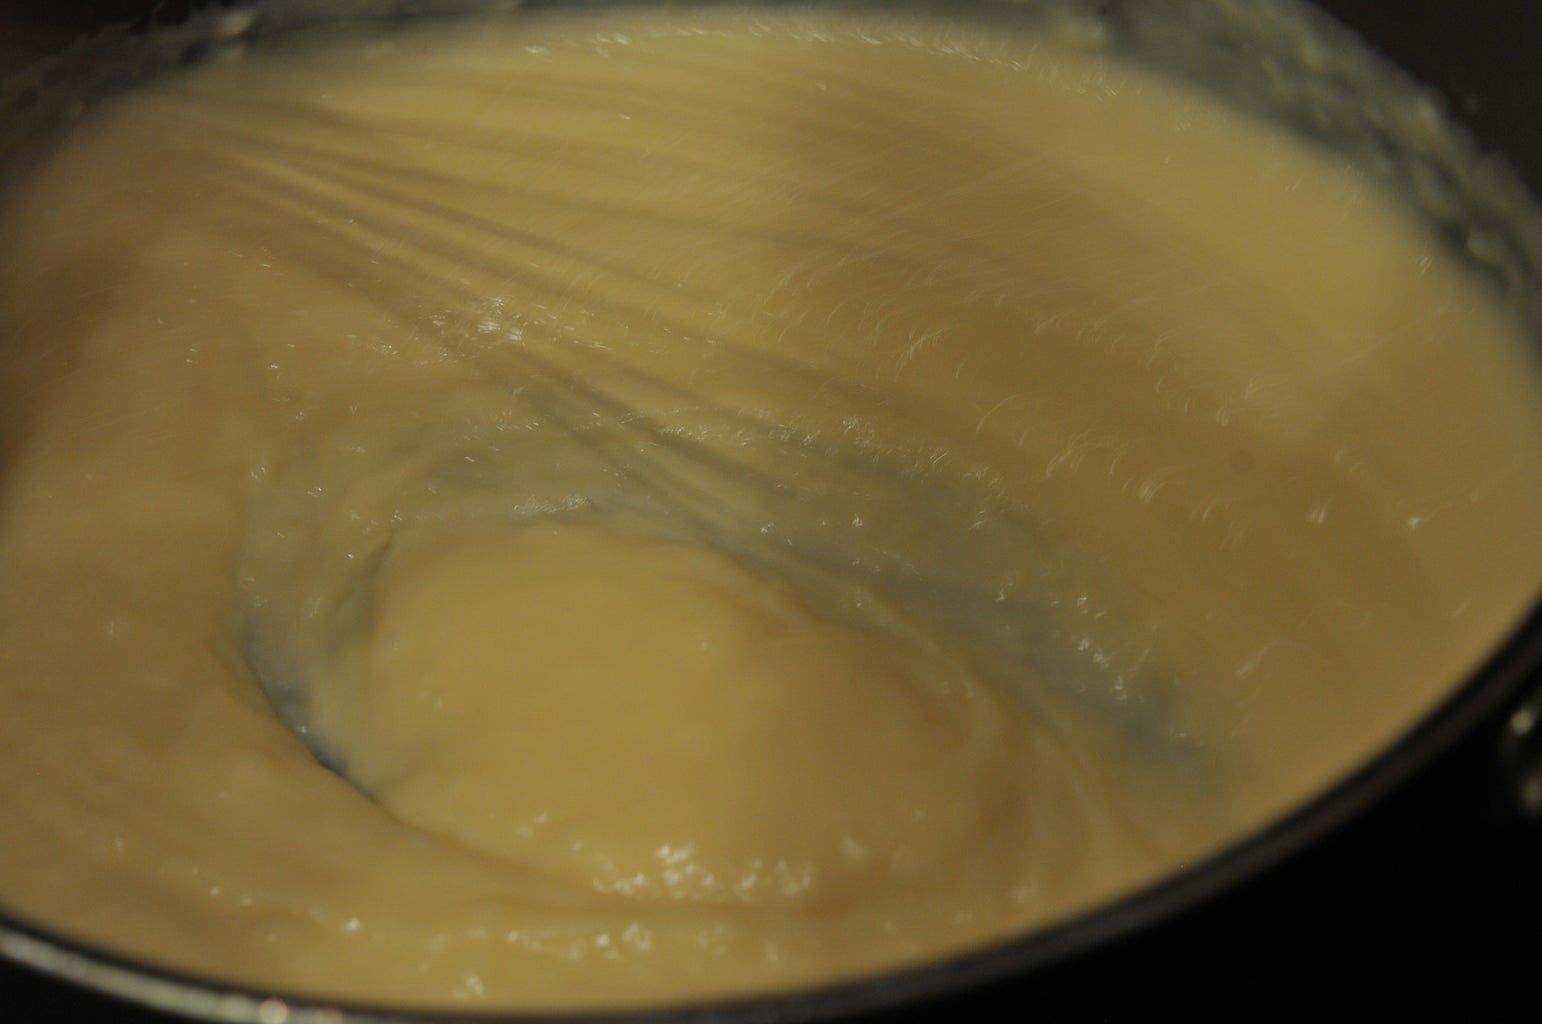 Place the Pan on Low Heat and Stir Continuously Until the Custard Thickens